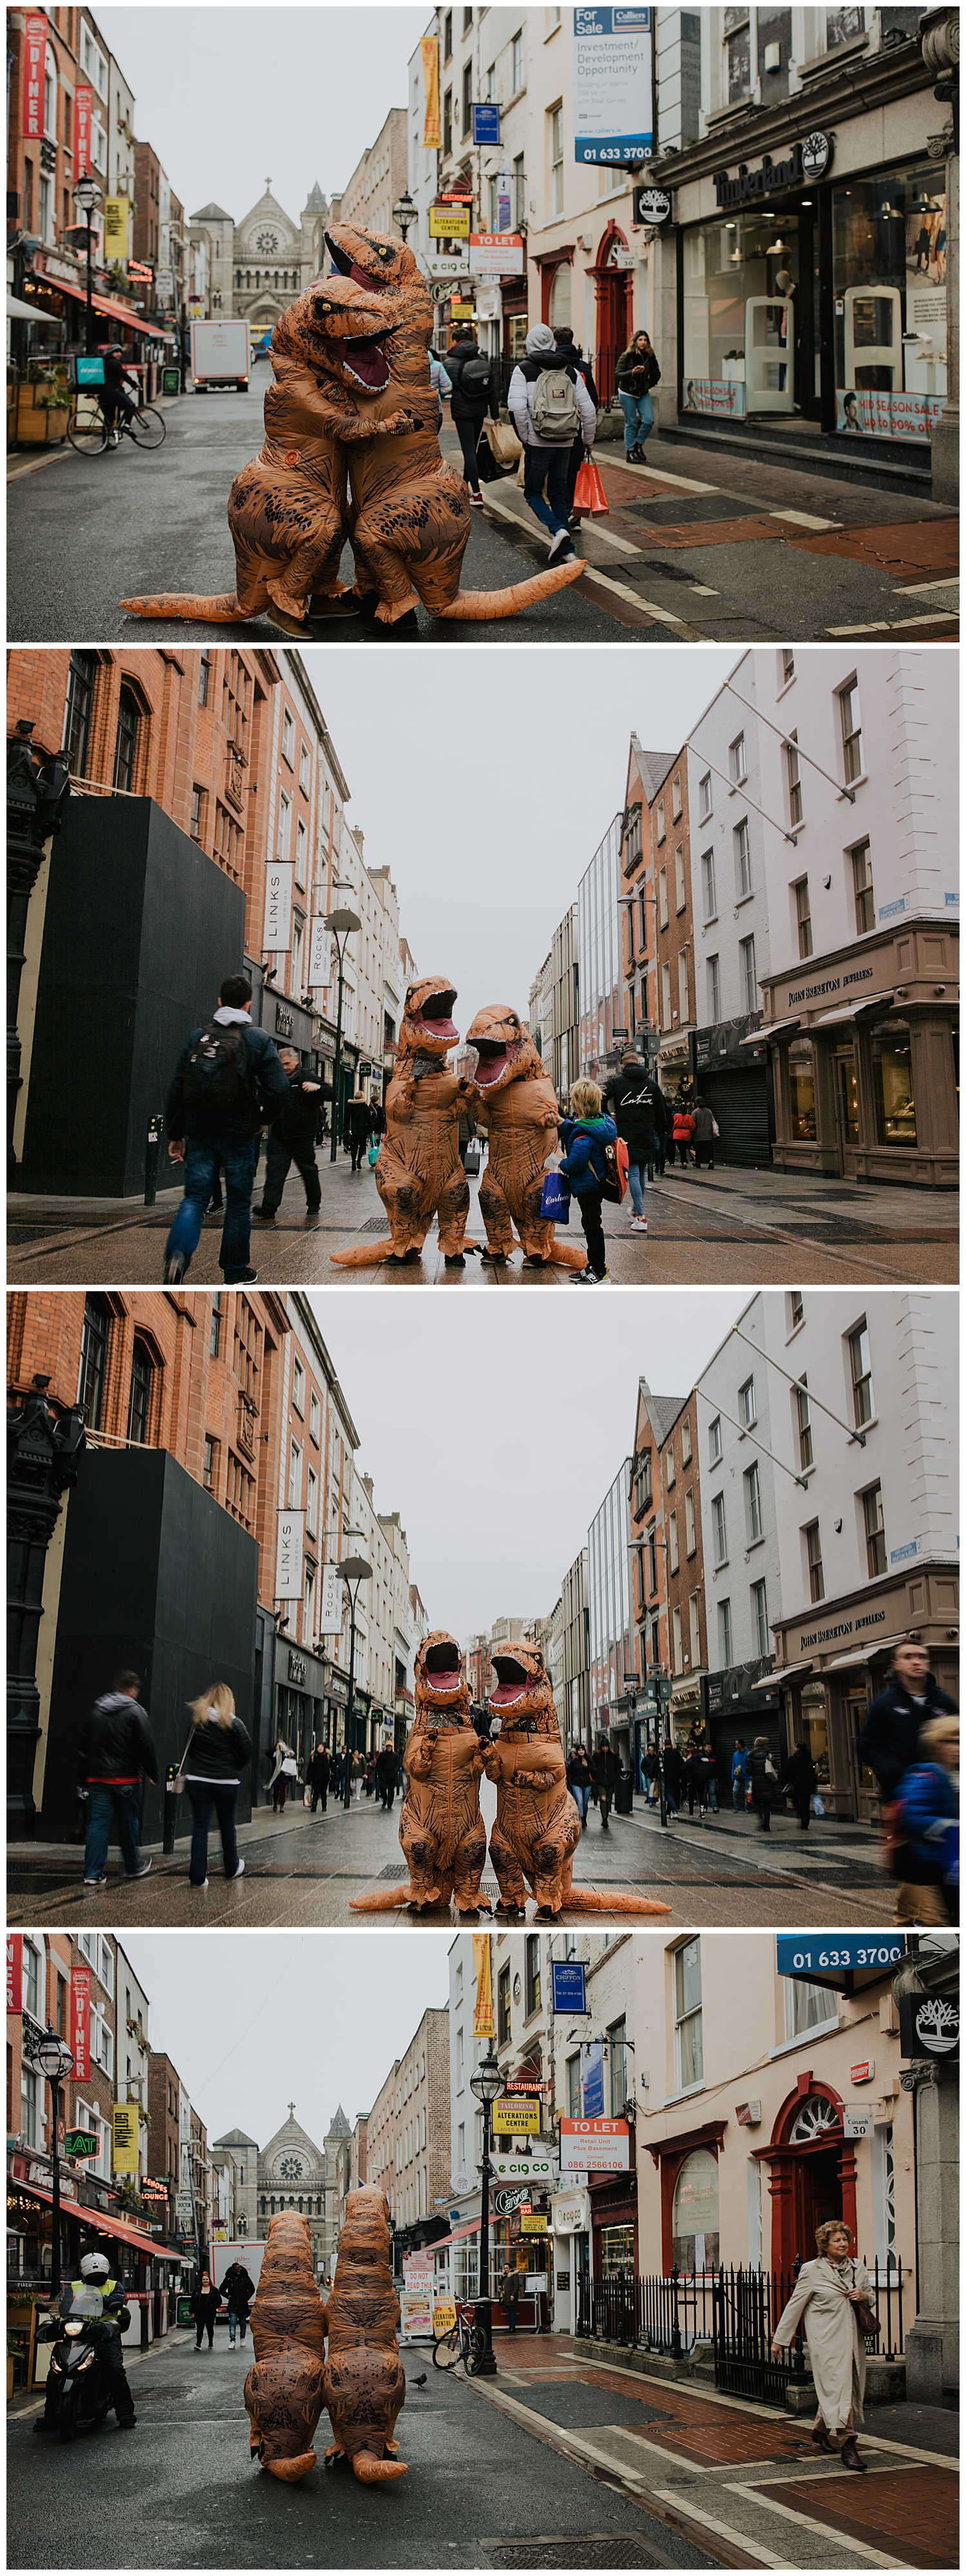 m-m-t-rex-engagement-session-wedding-photographer-dublin-ireland-livia-figueiredo-62.jpg